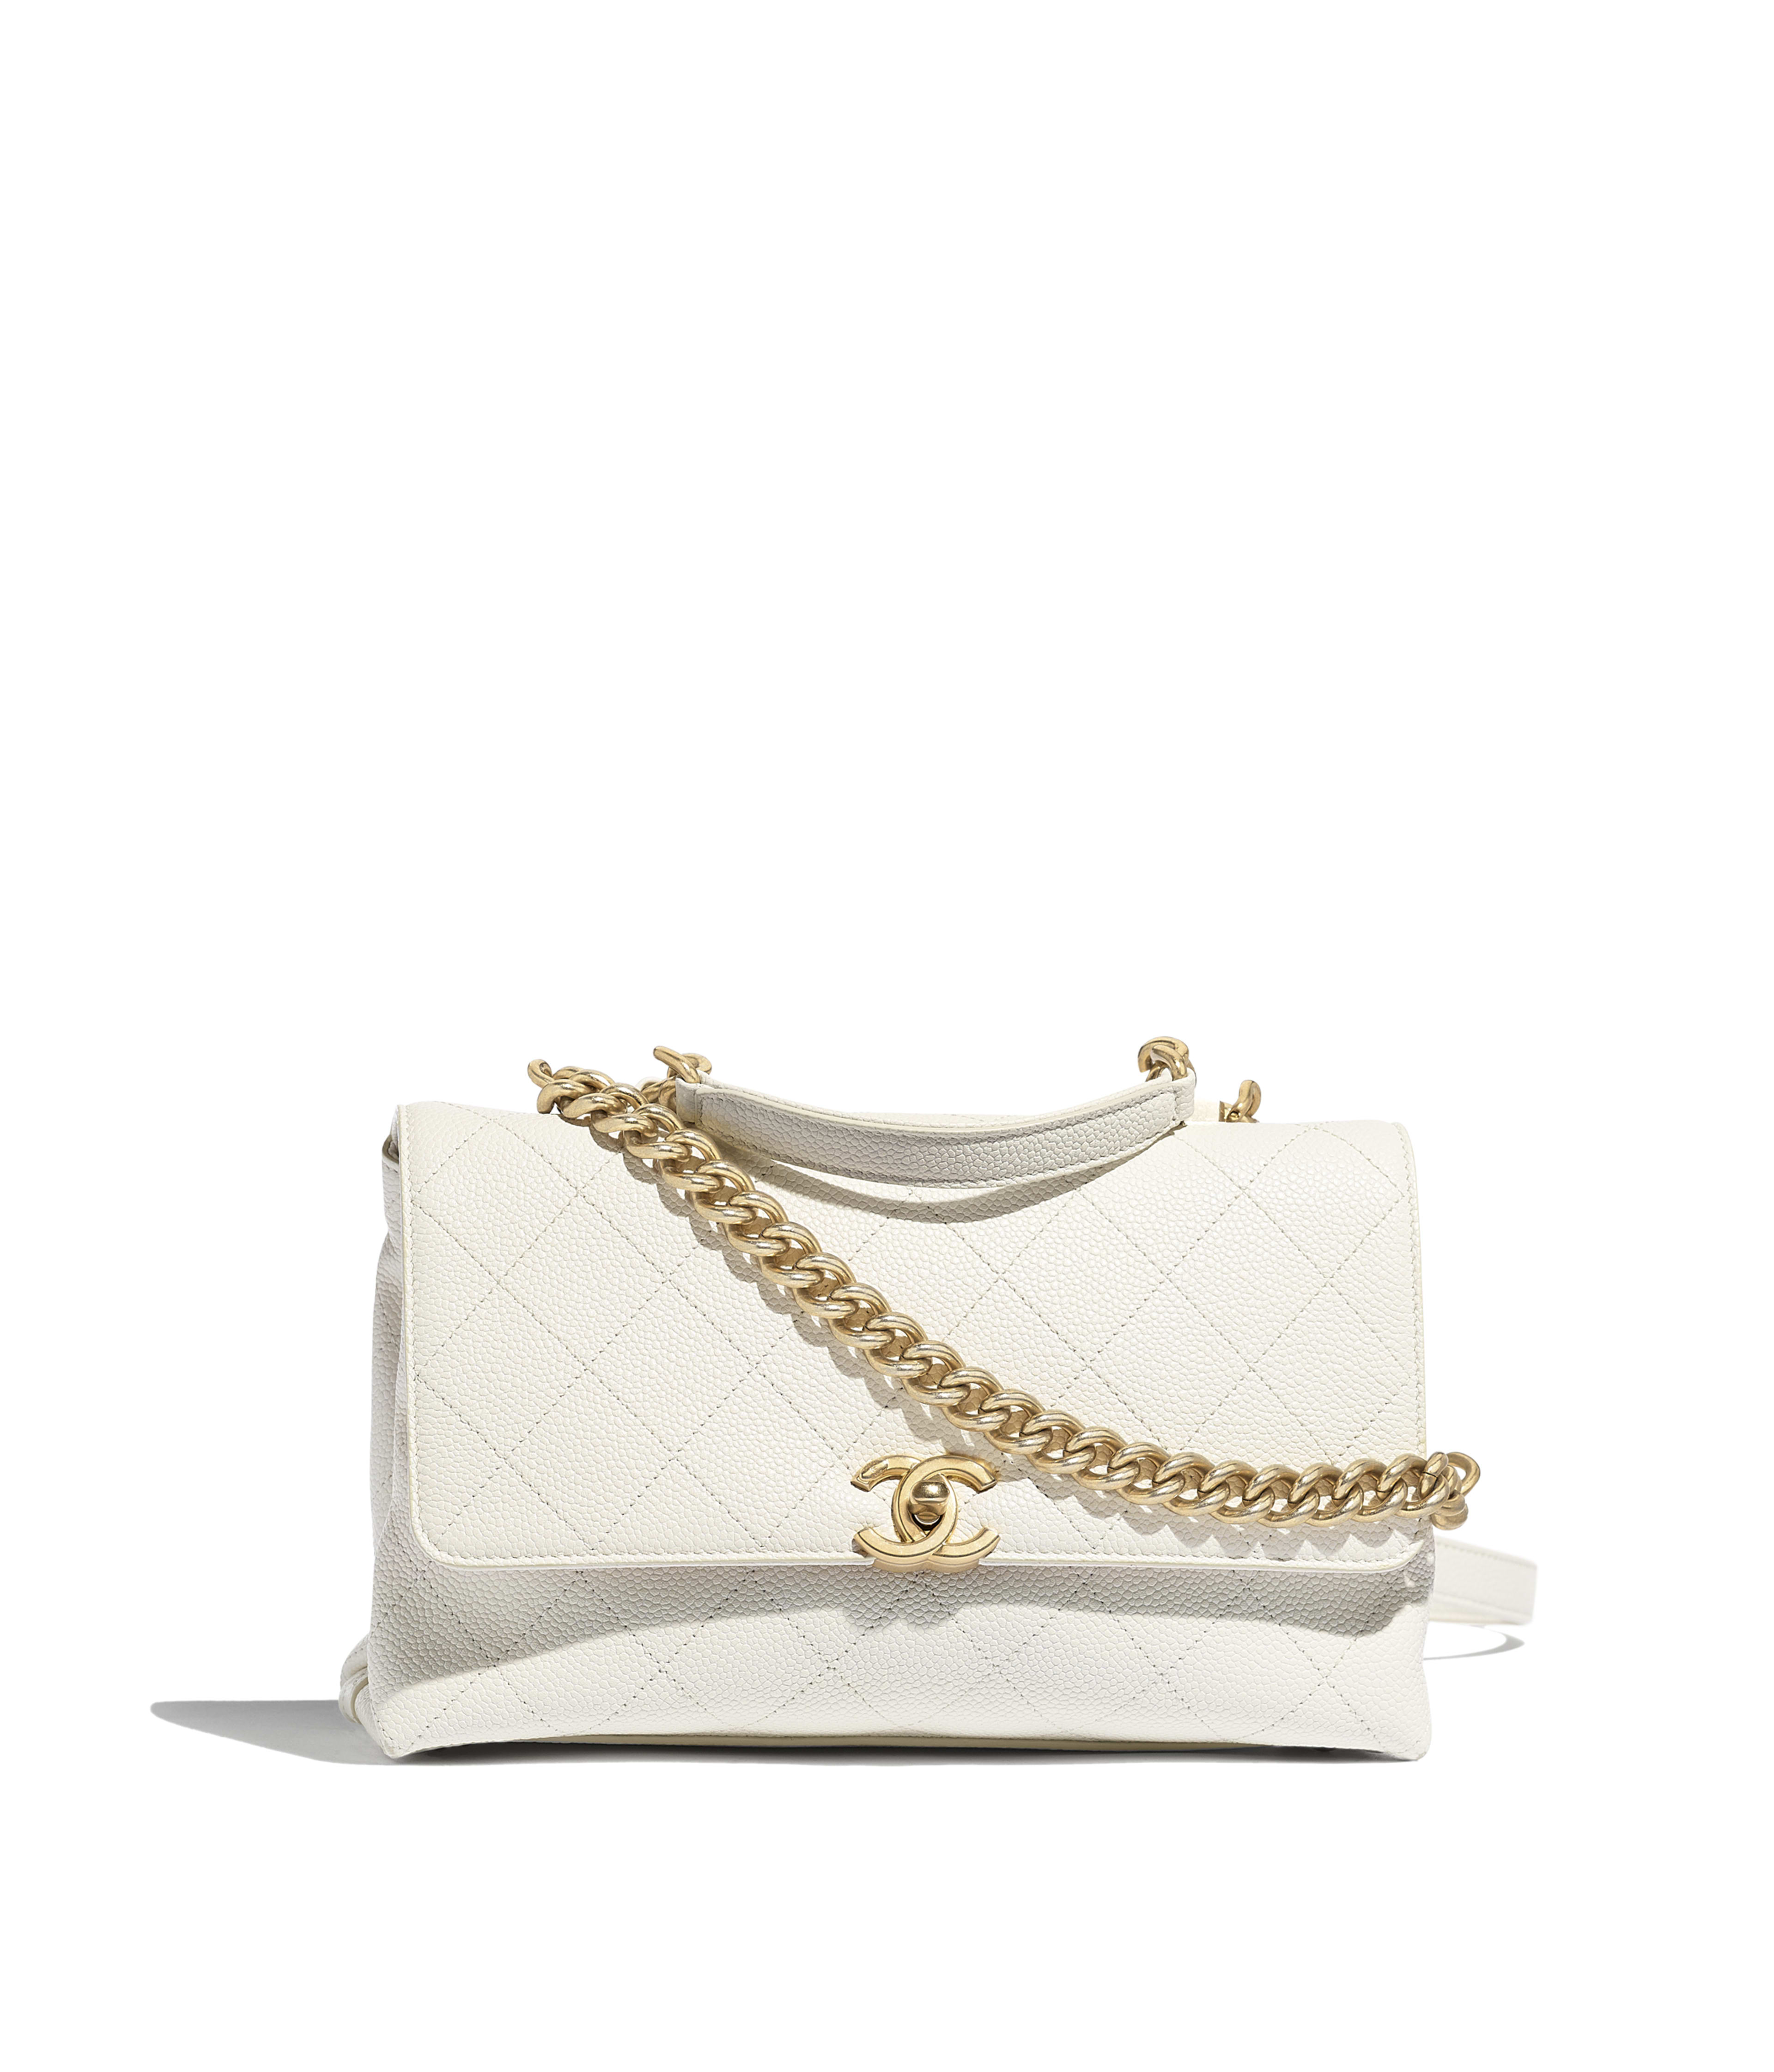 b1dd936fef6 Flap Bag Grained Calfskin & Gold-Tone Metal, White Ref. AS0305B0017010601